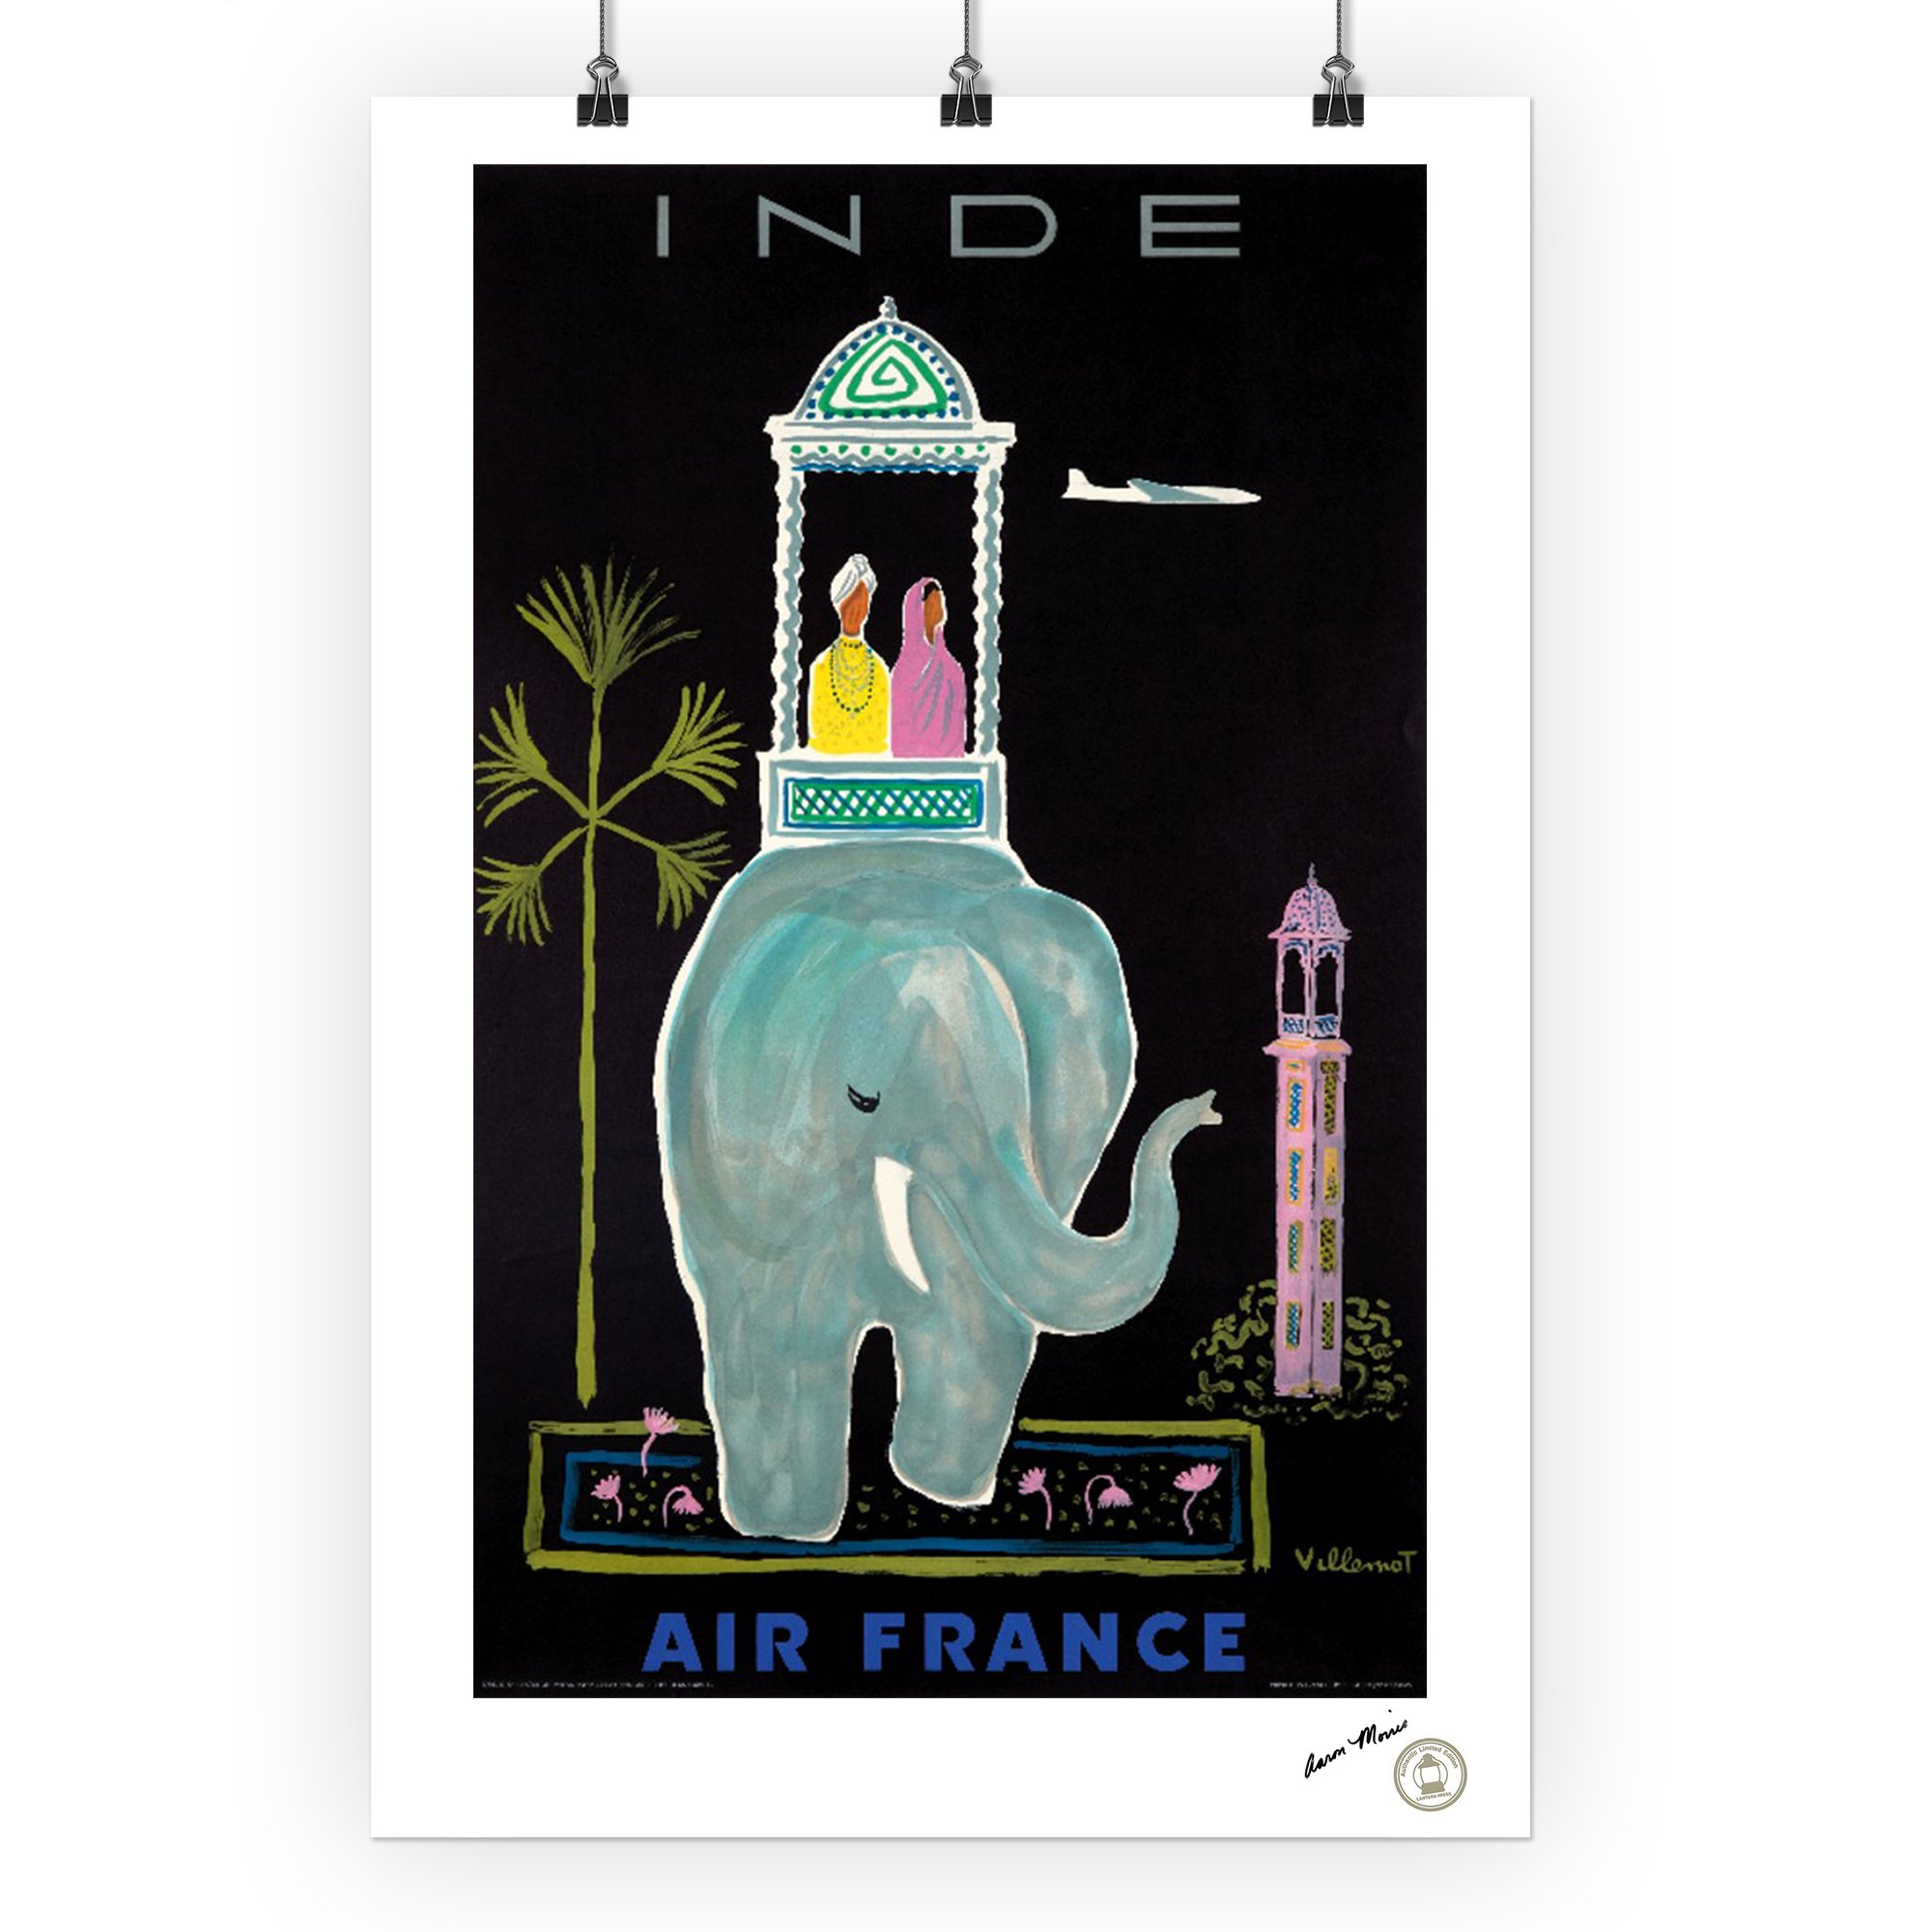 Air France - India (artist: Villemot) France c. 1956 Vintage Advertisement (24x36 SIGNED Print Master Giclee Print w/ Certificate of Authenticity - Wall Decor Travel Poster) by Lantern Press (Image #3)